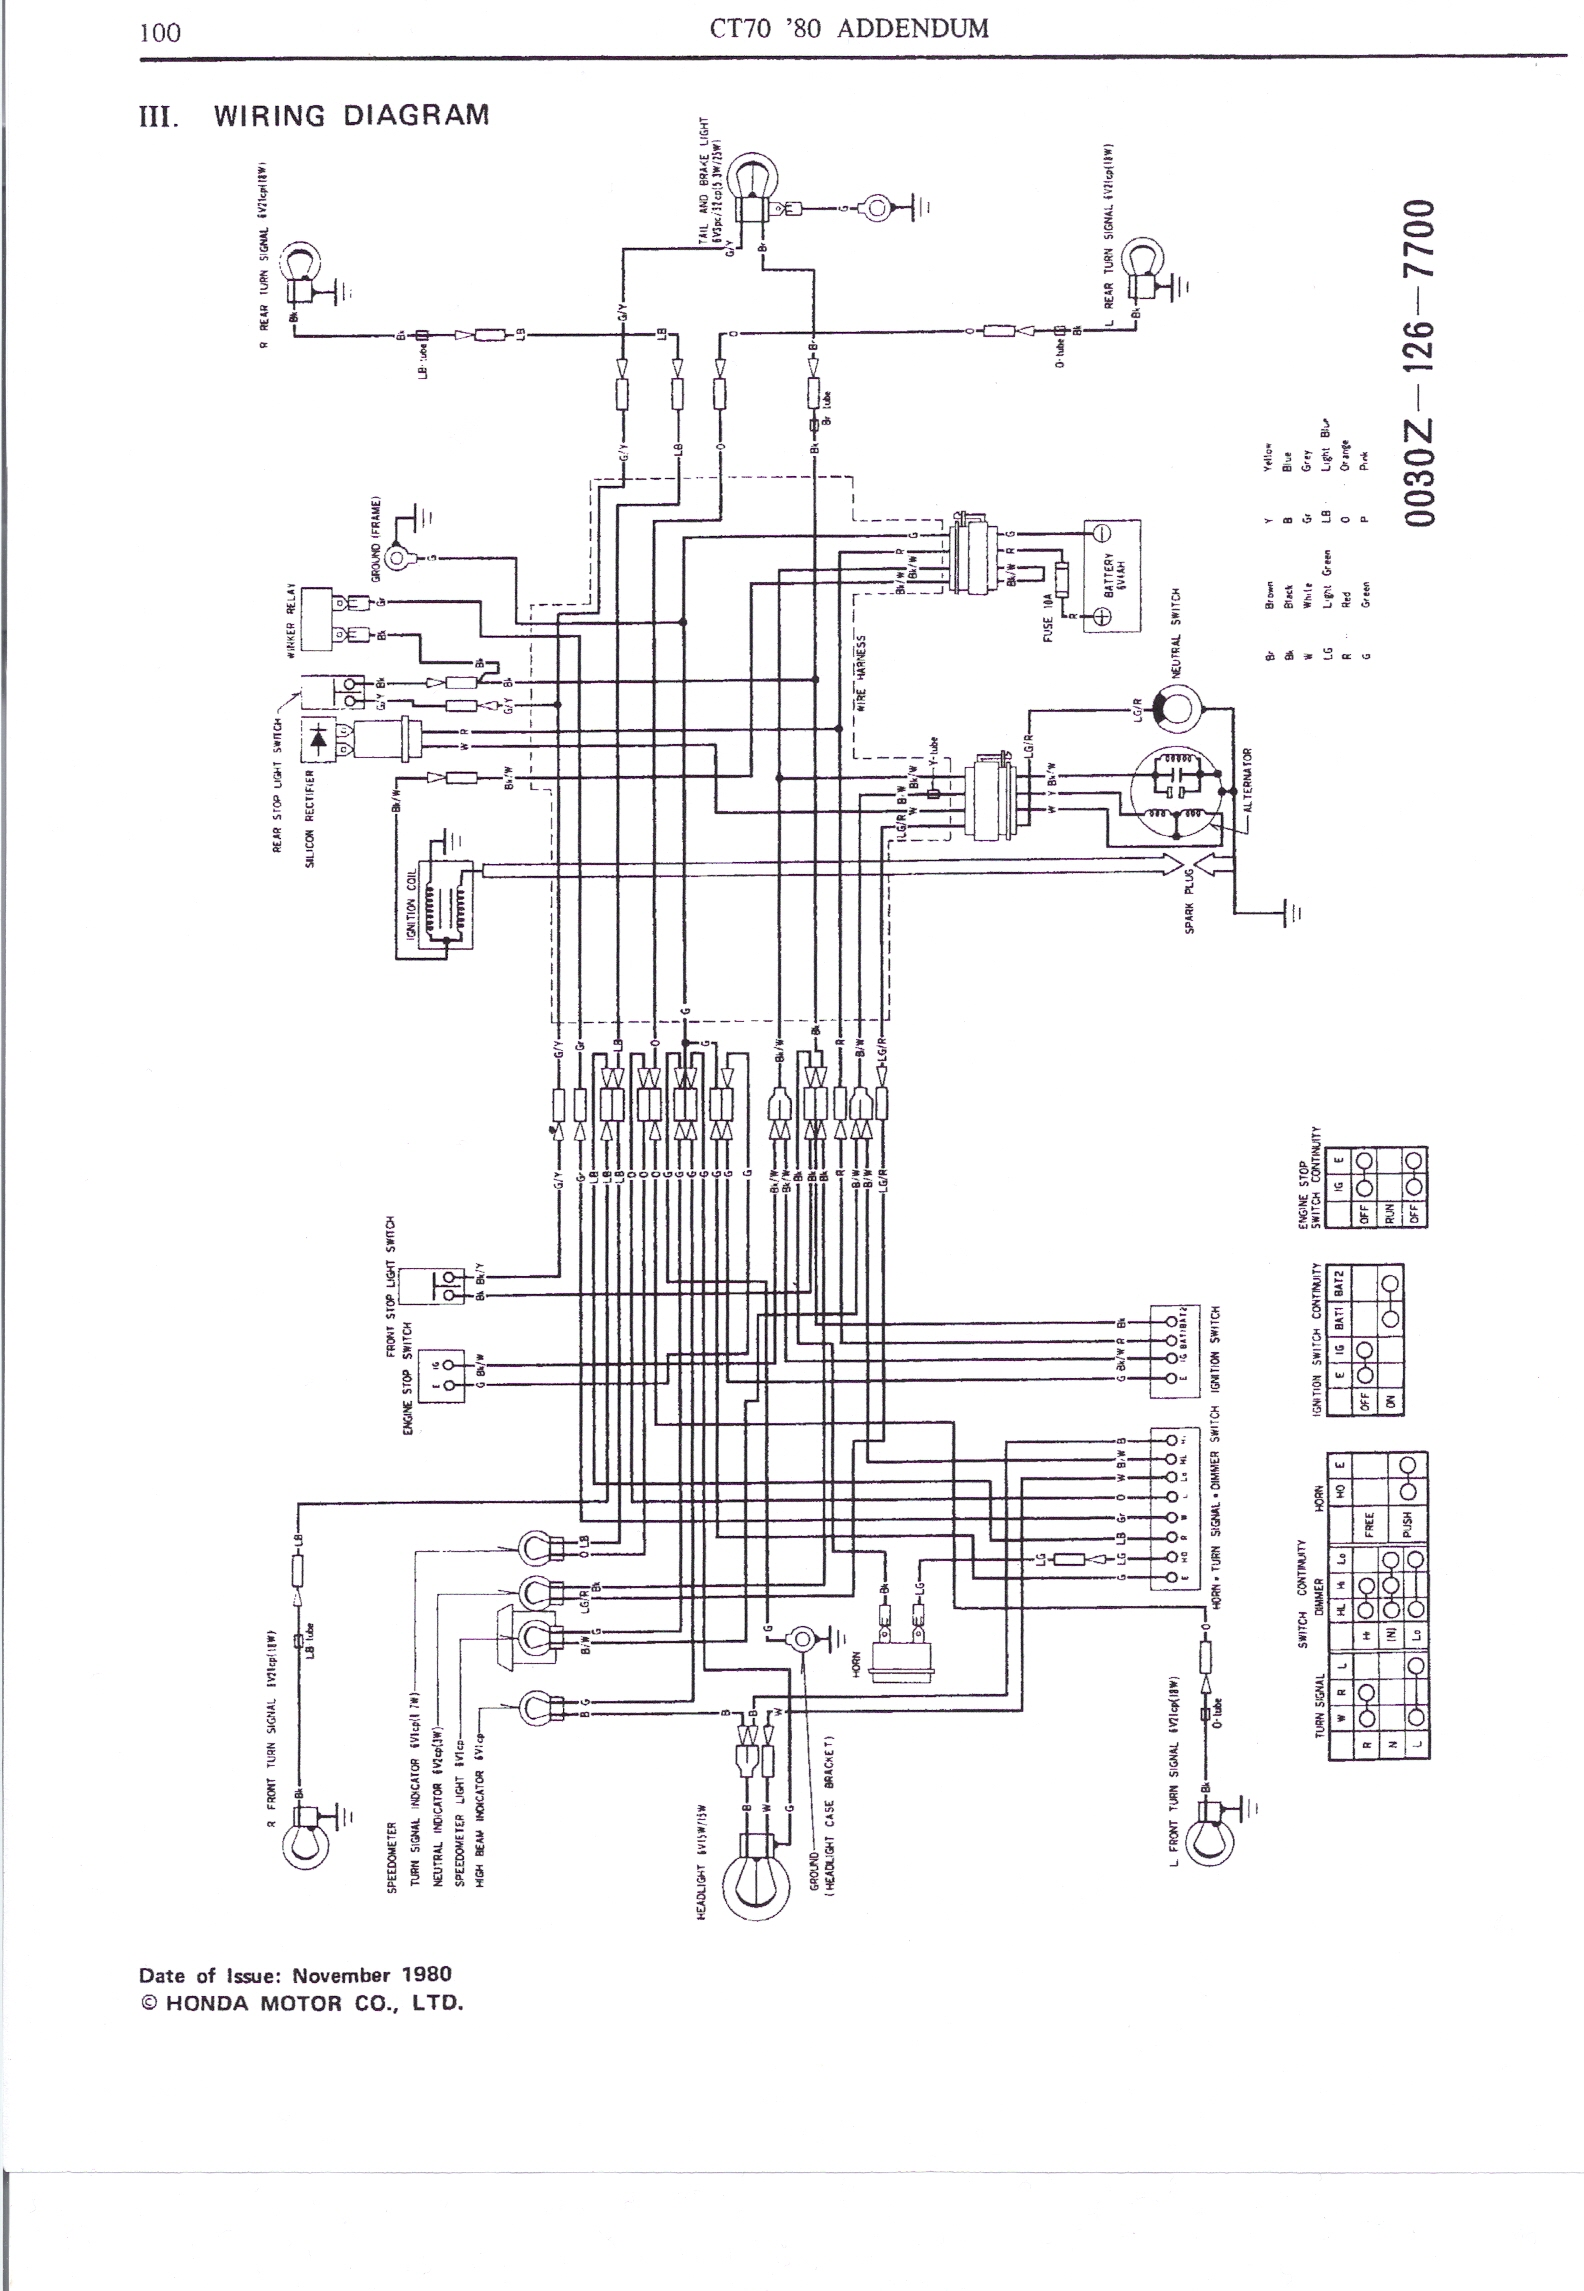 Honda Ct90 K0 Wiring Guide And Troubleshooting Of Diagram Ct70 Diagrams Home The Pardue Brothers Auto C90 Ct50